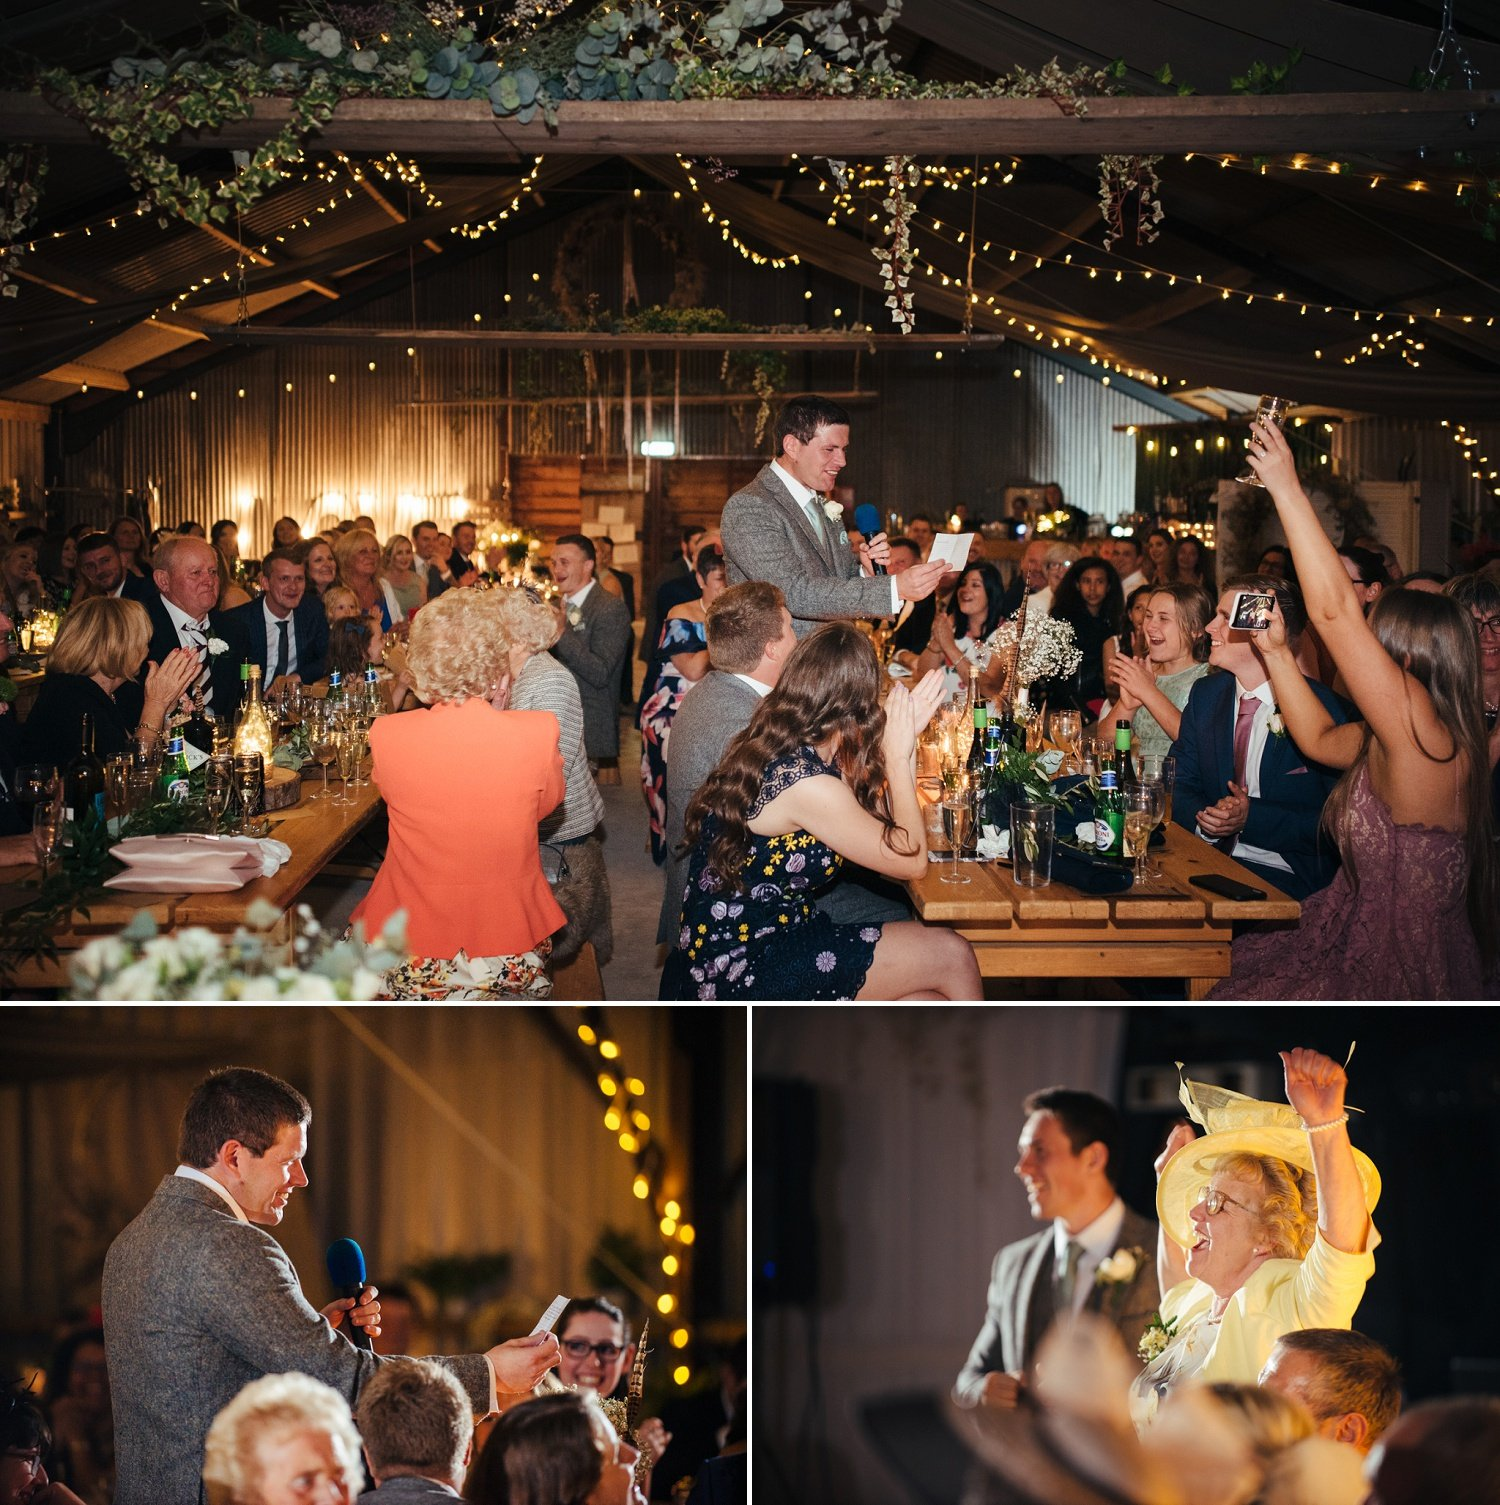 Wedding speeches at a barn wedding in Herefordshire